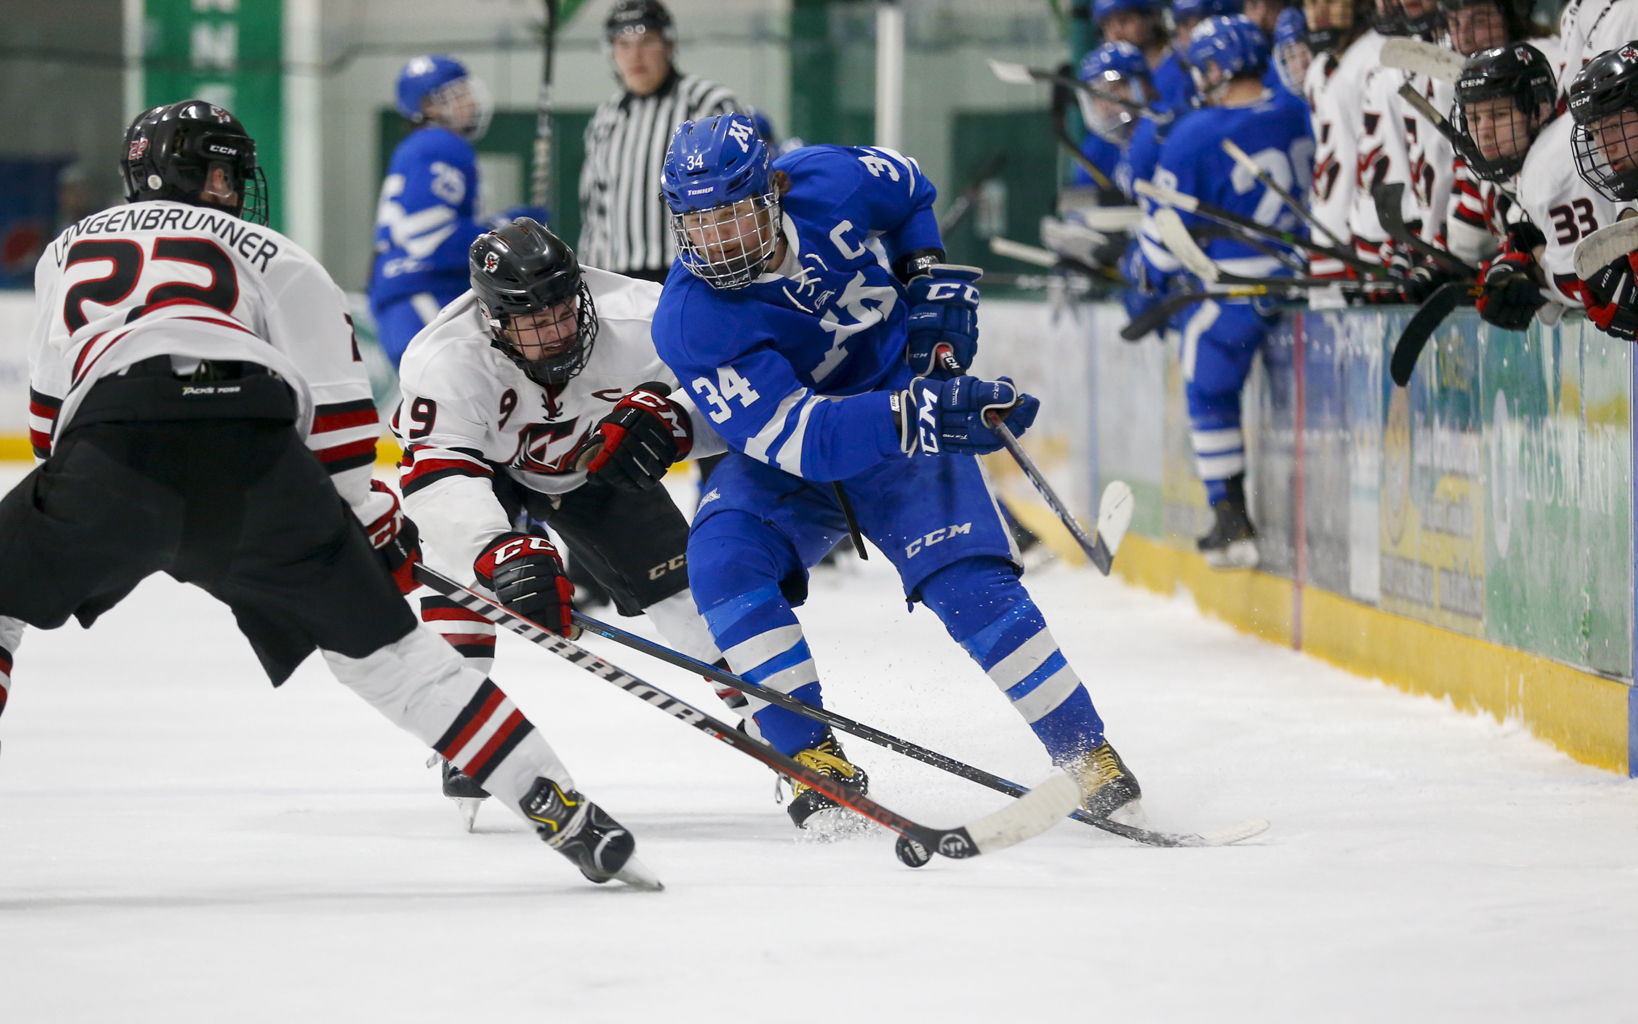 Minnetonka's Teddy Lagerback (34) battles two Eden Prairie defenders as he crosses into the offensive zone Saturday. Lagerback had the lone goal for the Skippers in their 6-1 loss to the Eagles at Braemar Arena. Photo by Jeff Lawler, SportsEngine